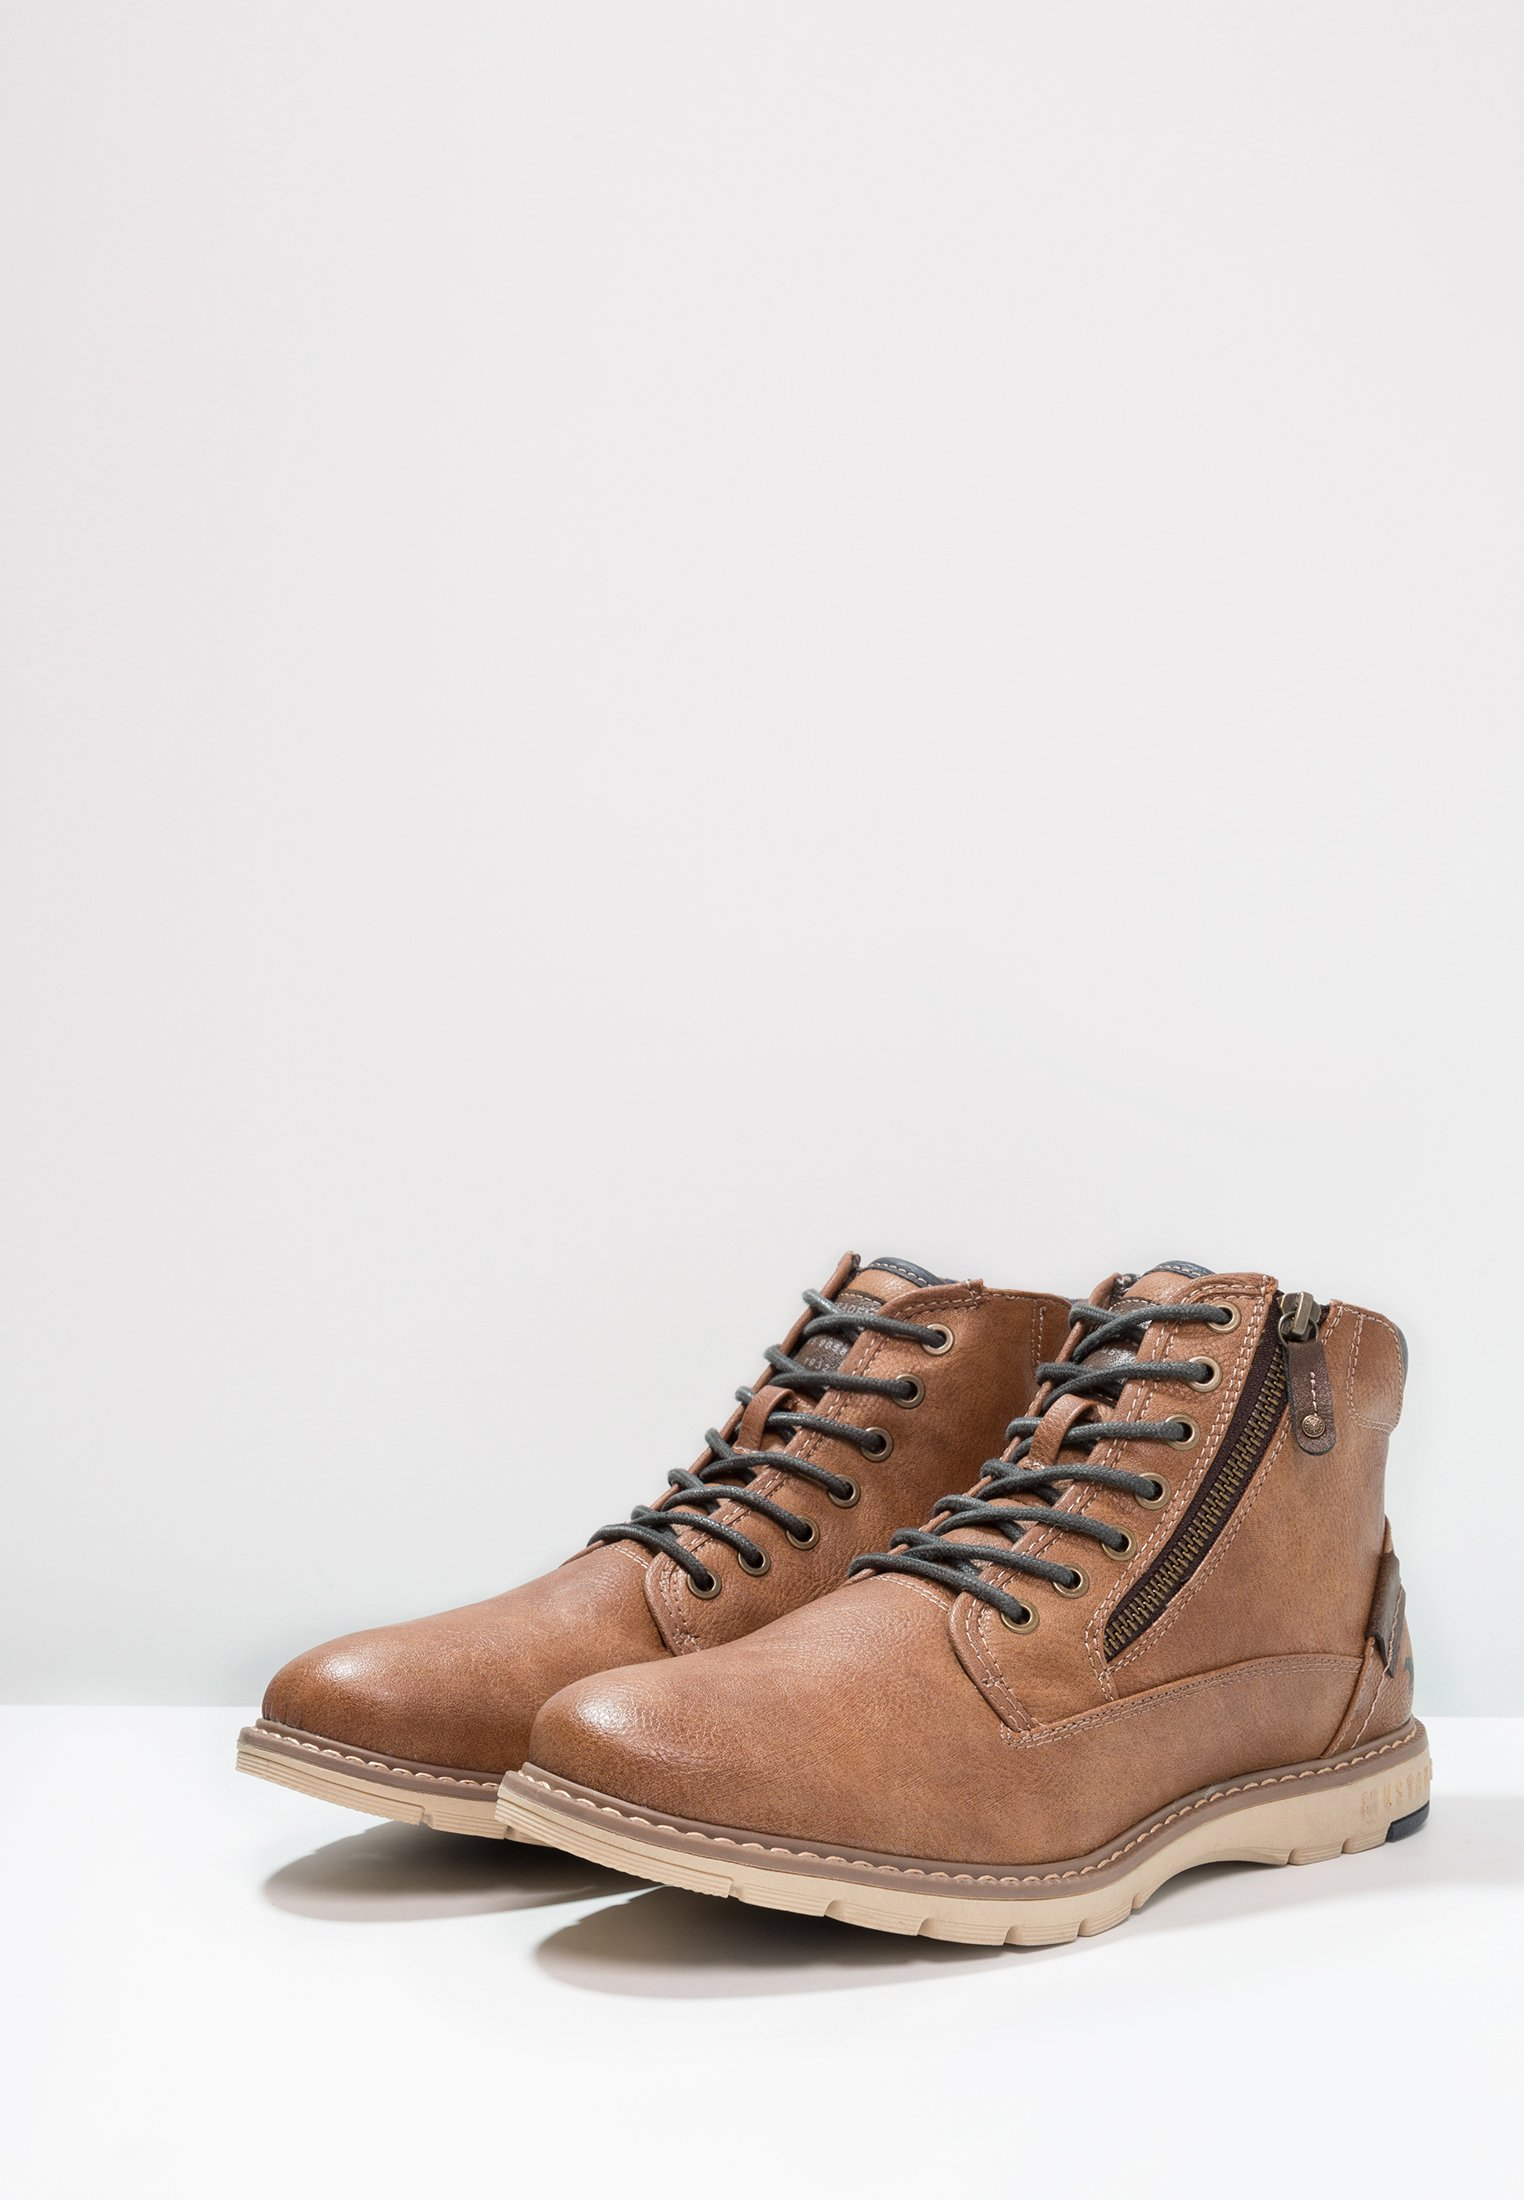 Up To Date Cheapest Mustang Lace-up ankle boots - kastanie | men's shoes 2020 TtGlL